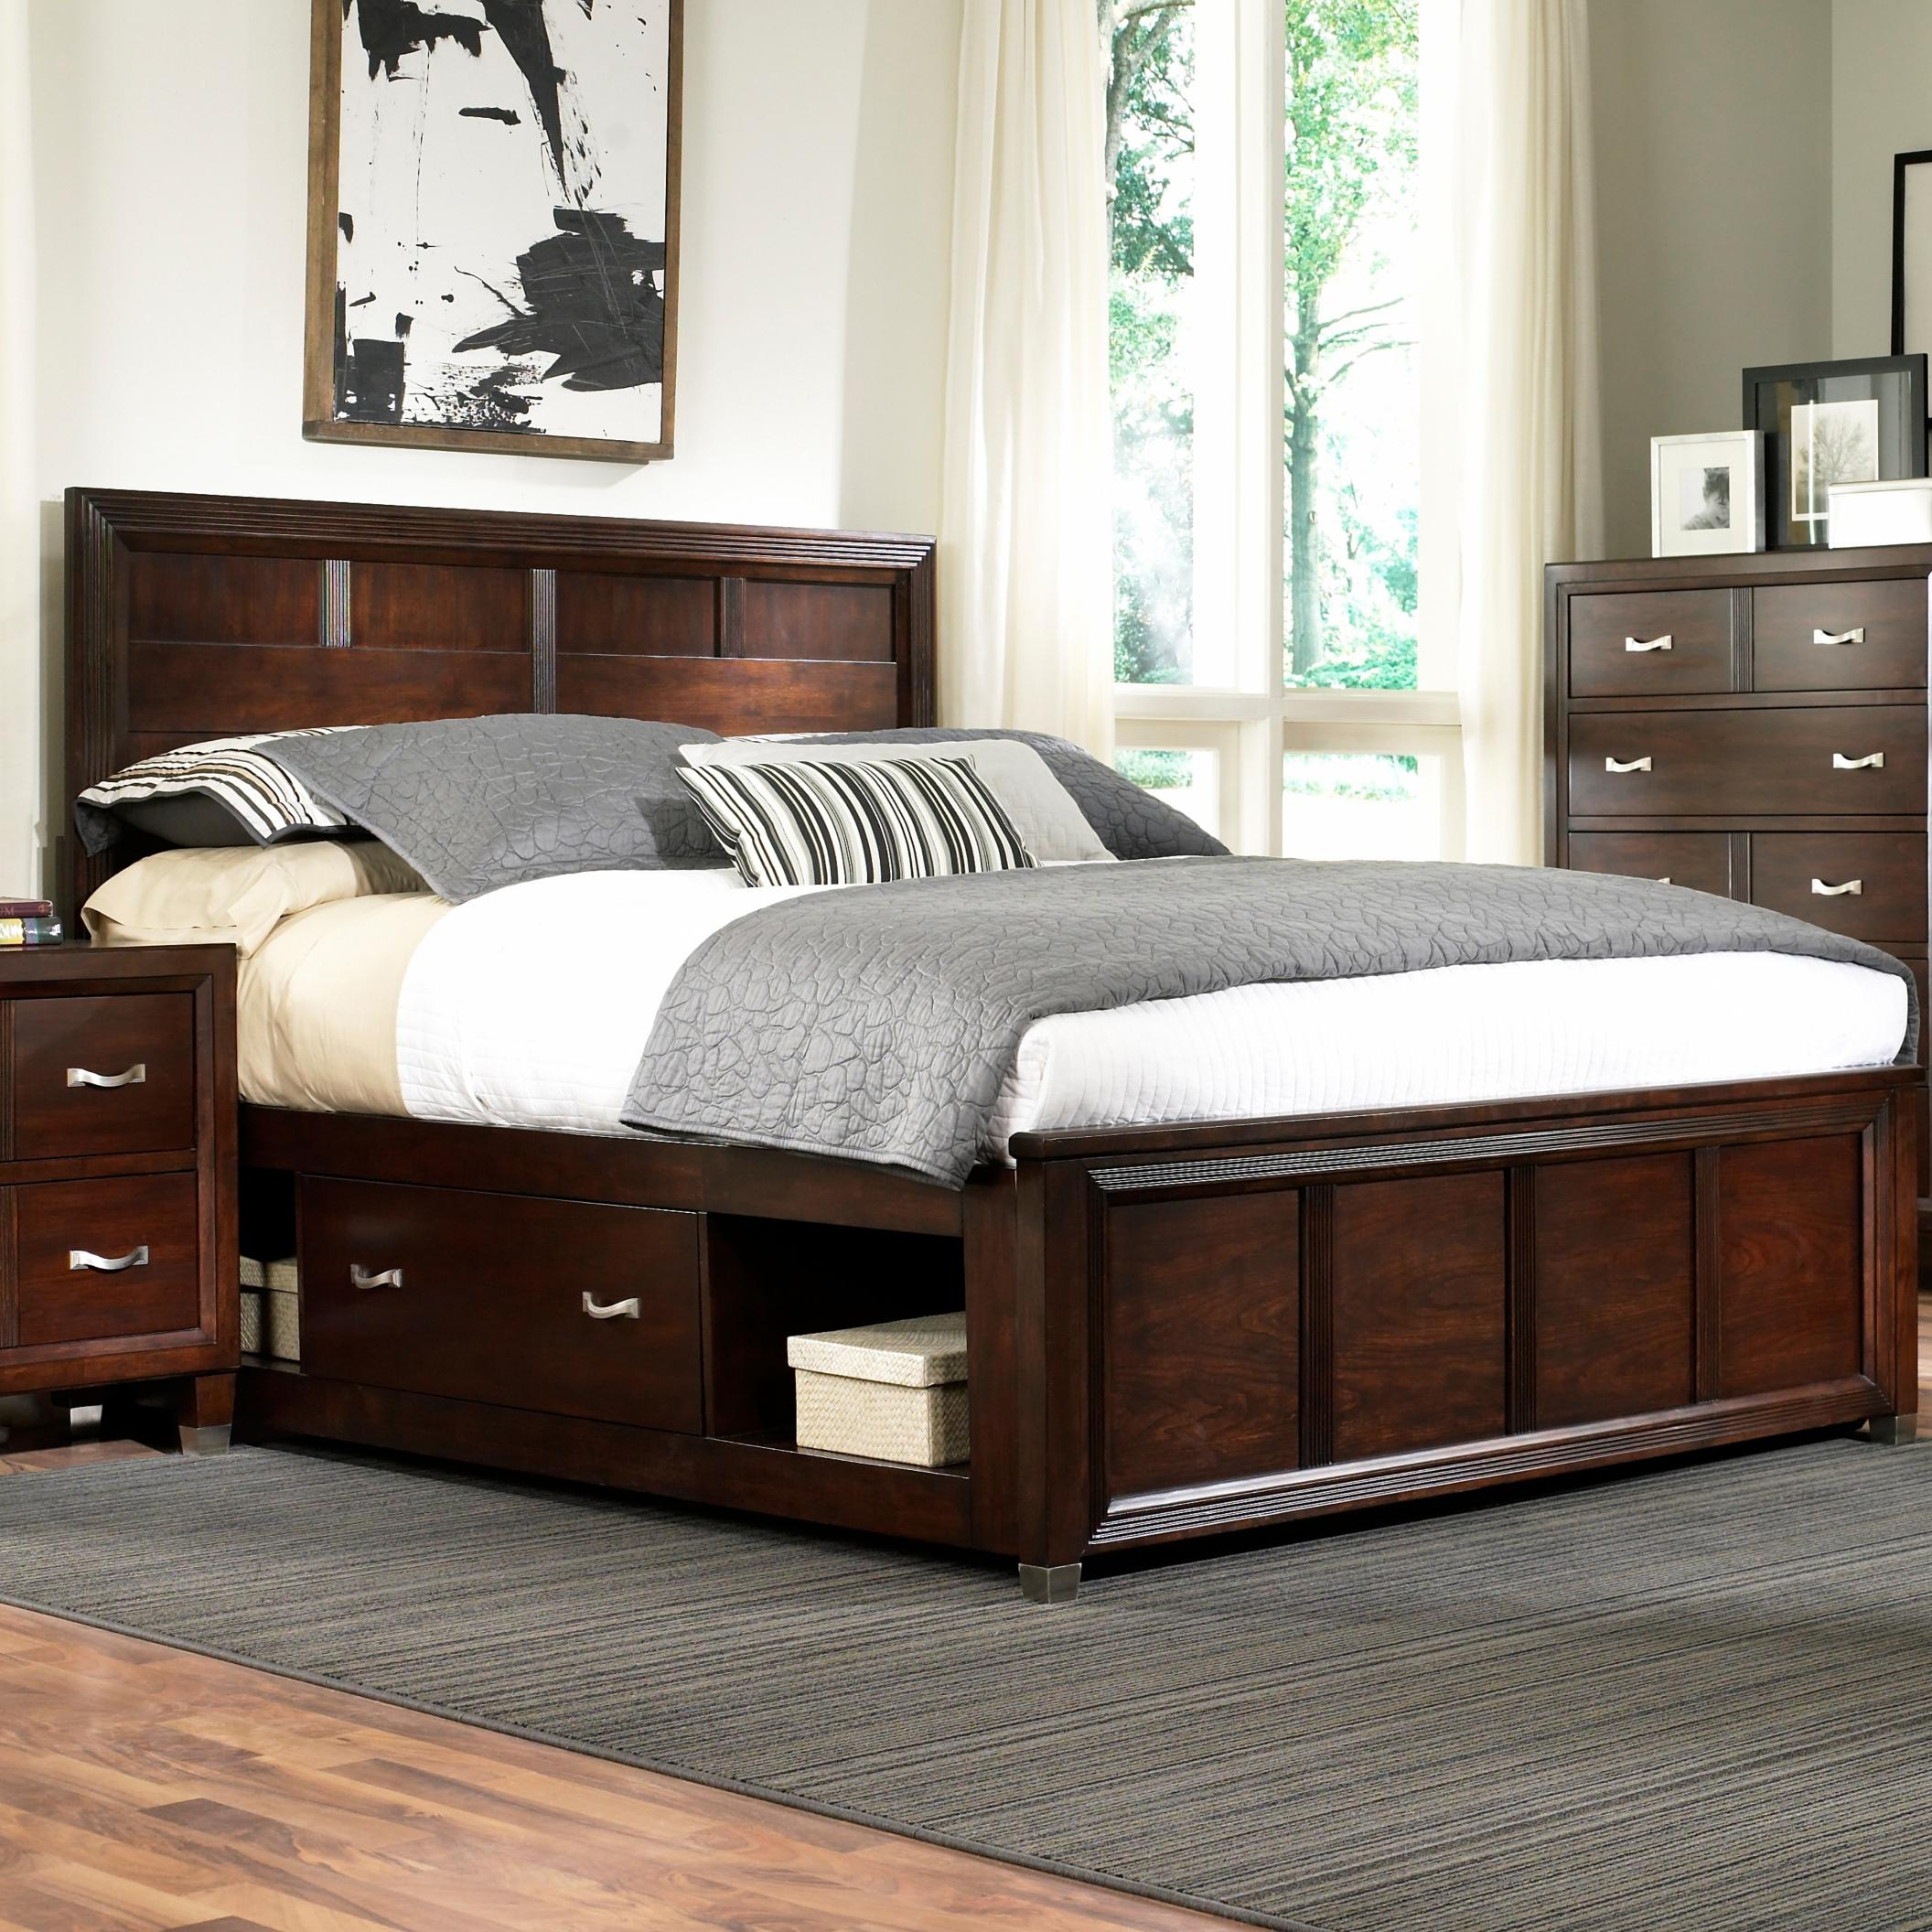 broyhill furniture eastlake 2 king captain's bed with single